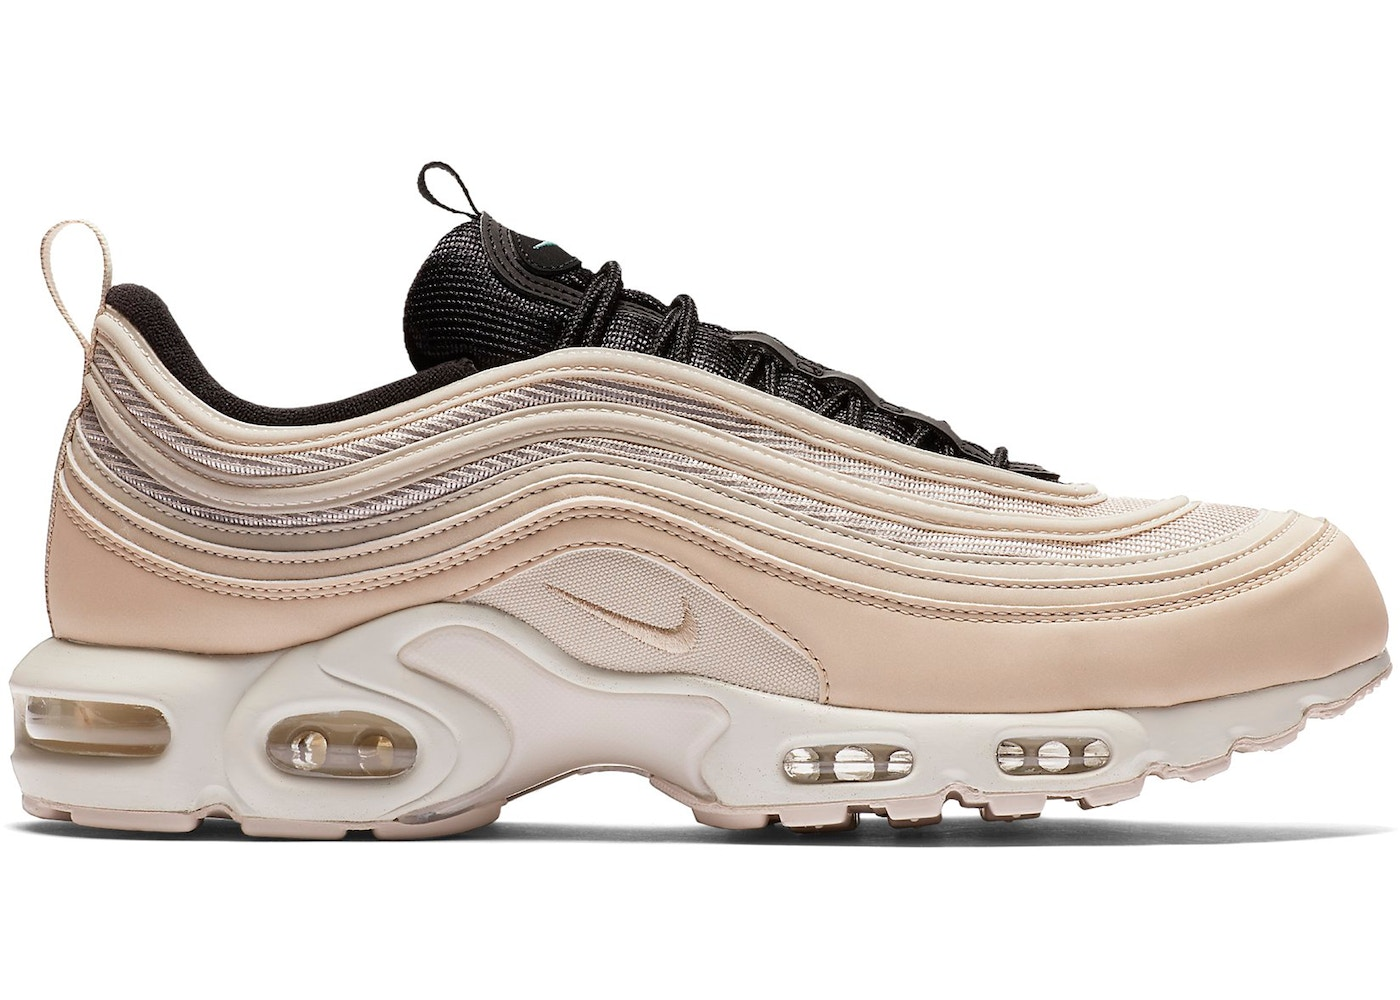 6a1e42dcc2fc0 Sell. or Ask. Size: 12. View All Bids. Air Max Plus 97 Light Orewood Brown